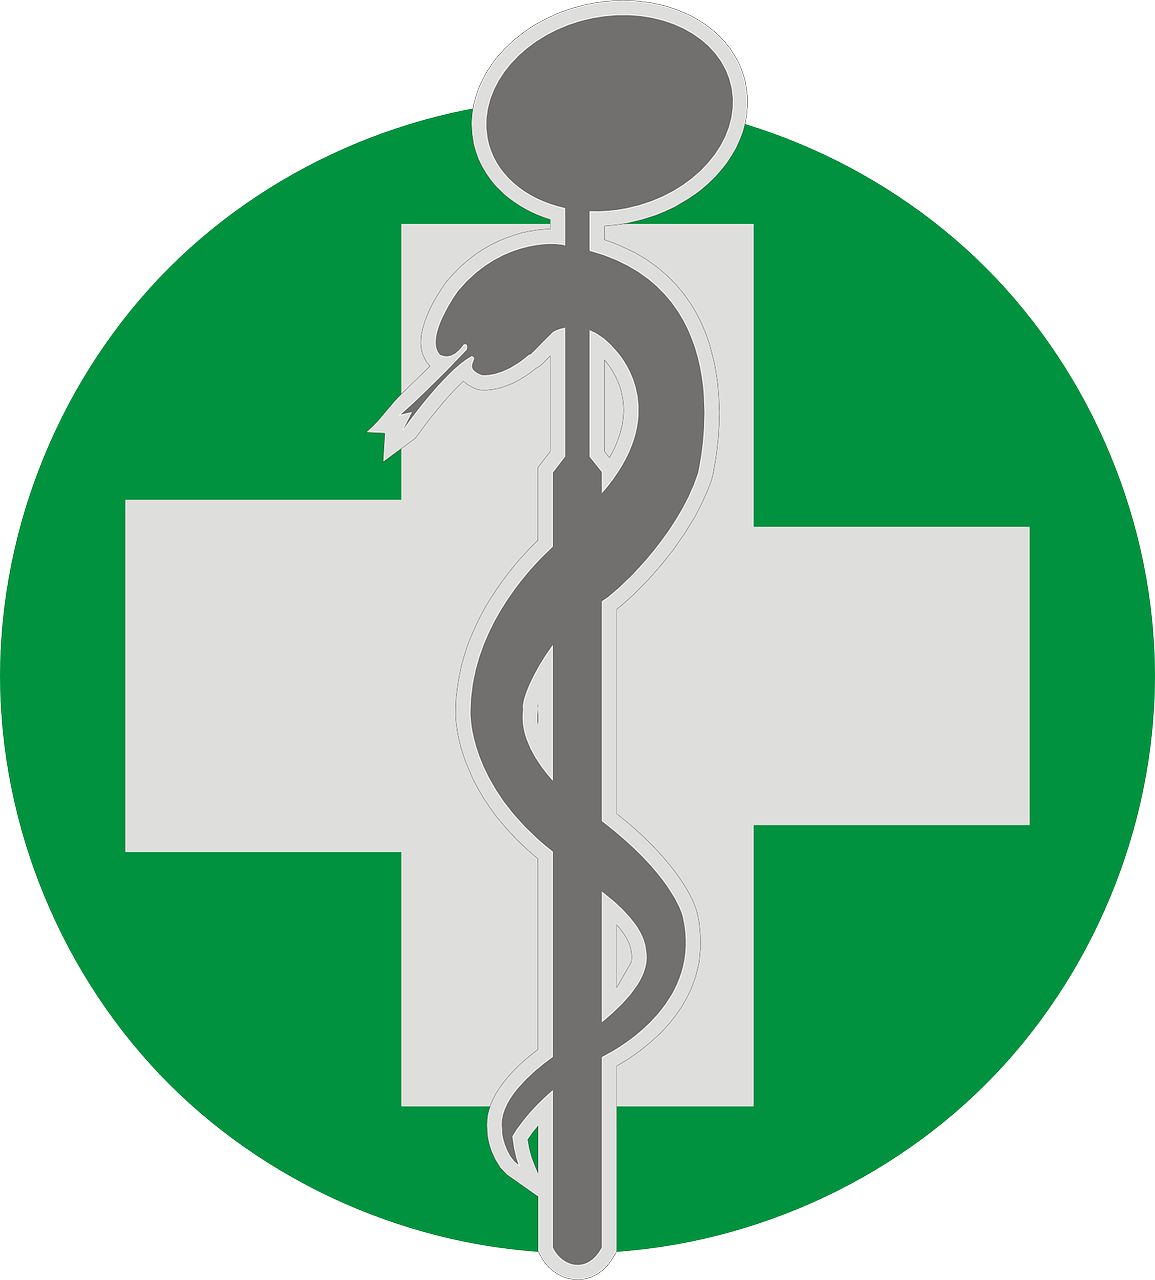 medic,pharmacy,cross,dentist,doctor,snake,worm,stick,logo,first aid,help,medicine,hospital,free vector graphics,free pictures, free photos, free images, royalty free, free illustrations, public domain